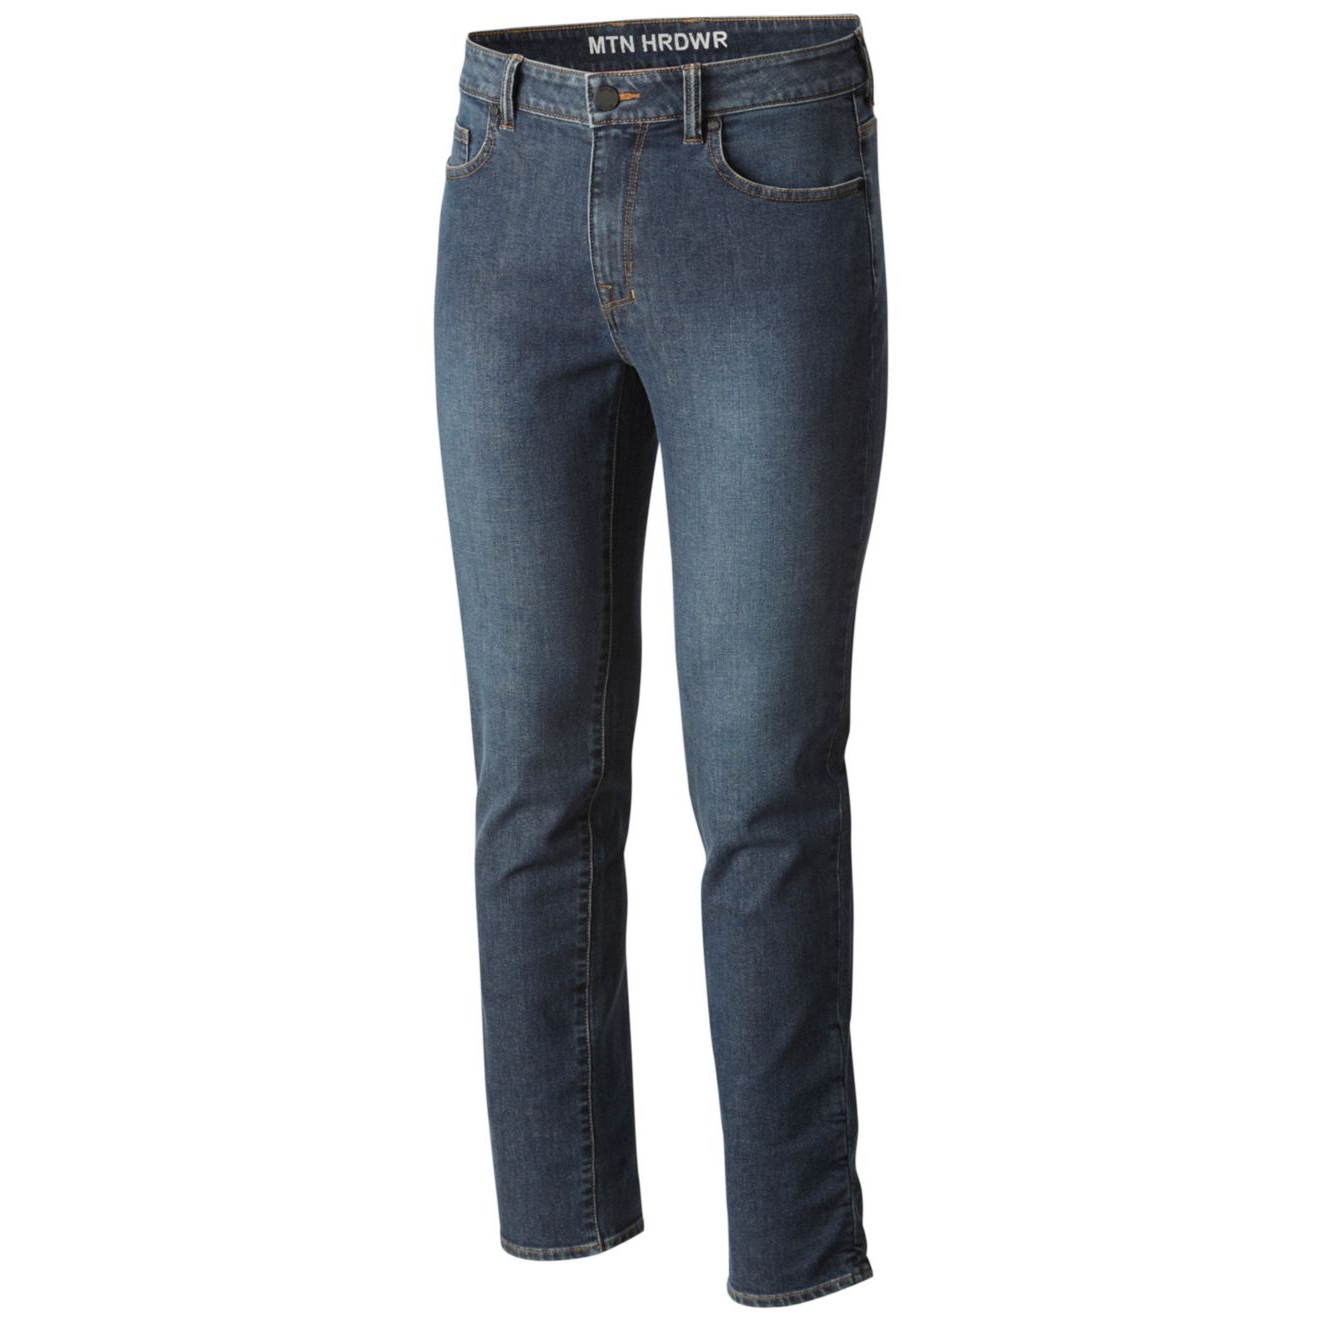 Mountain Hardwear Men's Hardwear Denim Jean